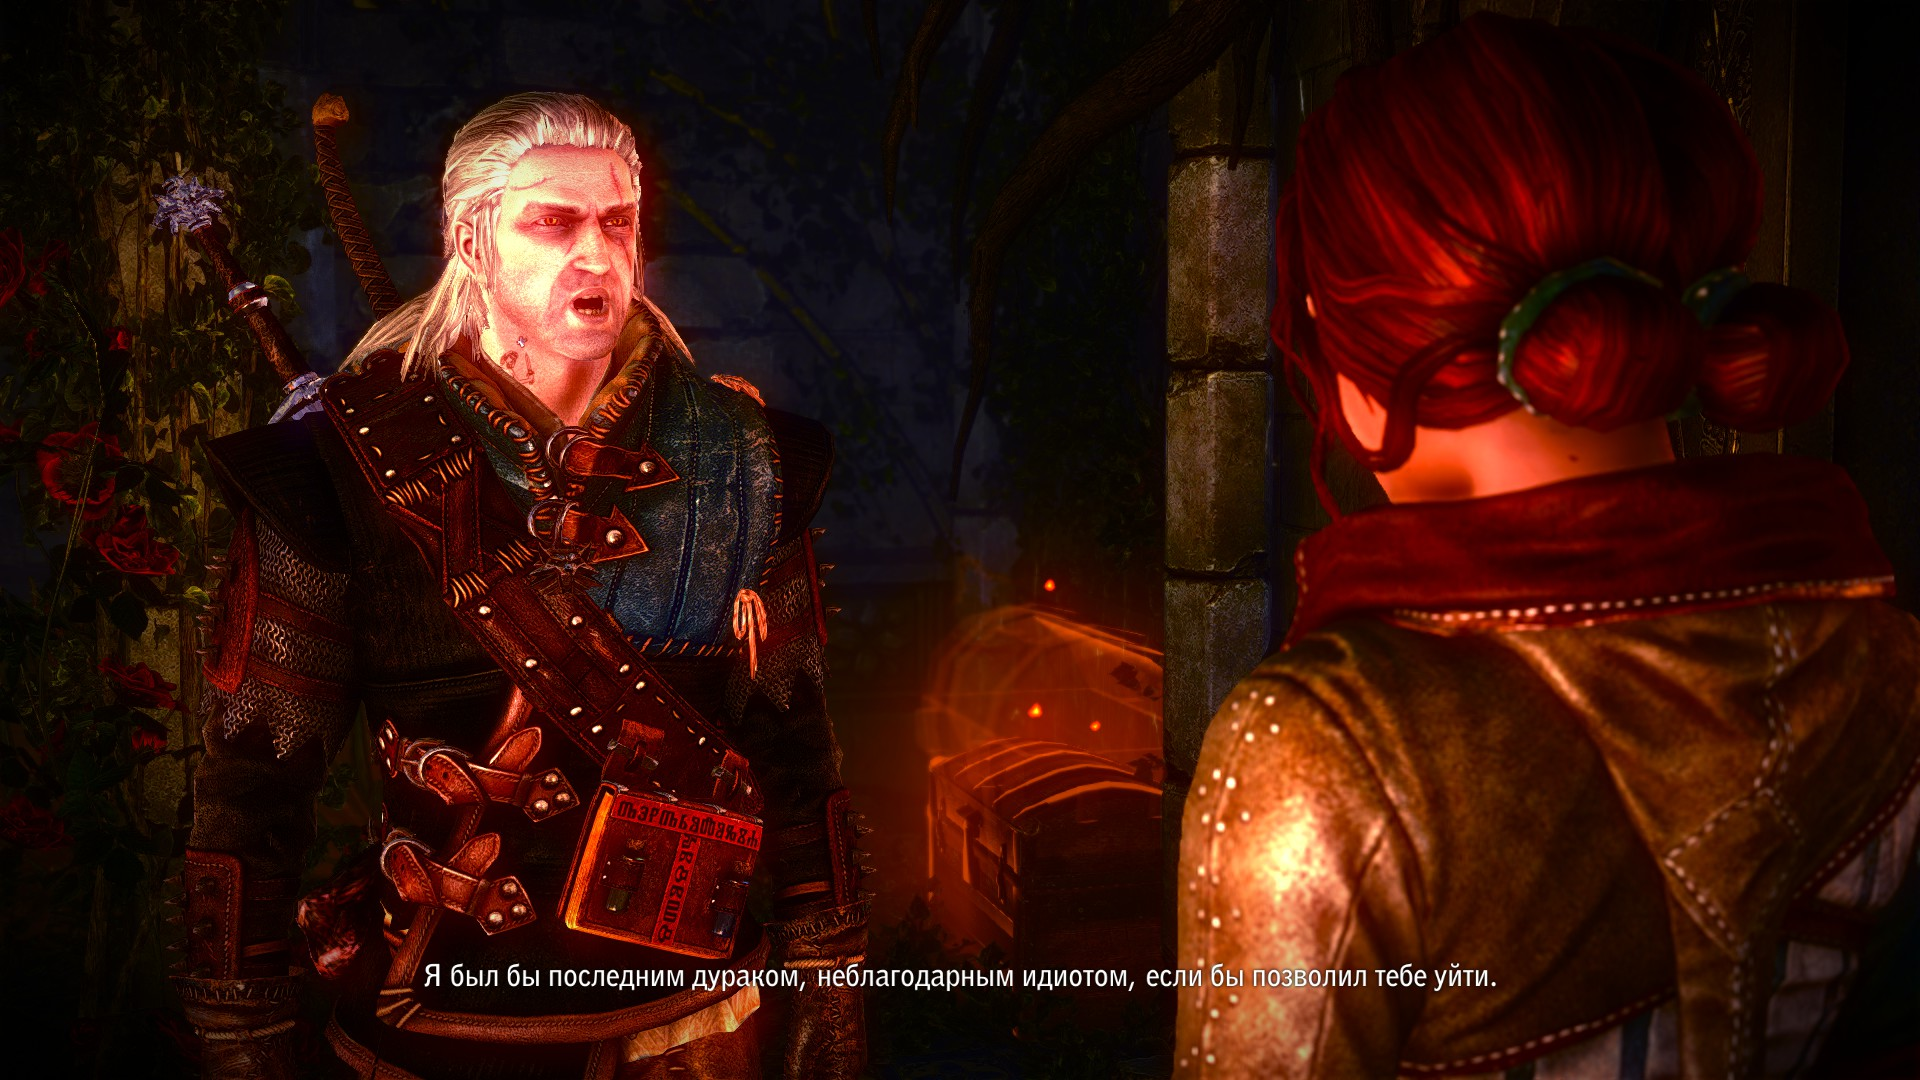 20190807191049_1.jpg - Witcher 2: Assassins of Kings, the Трисс